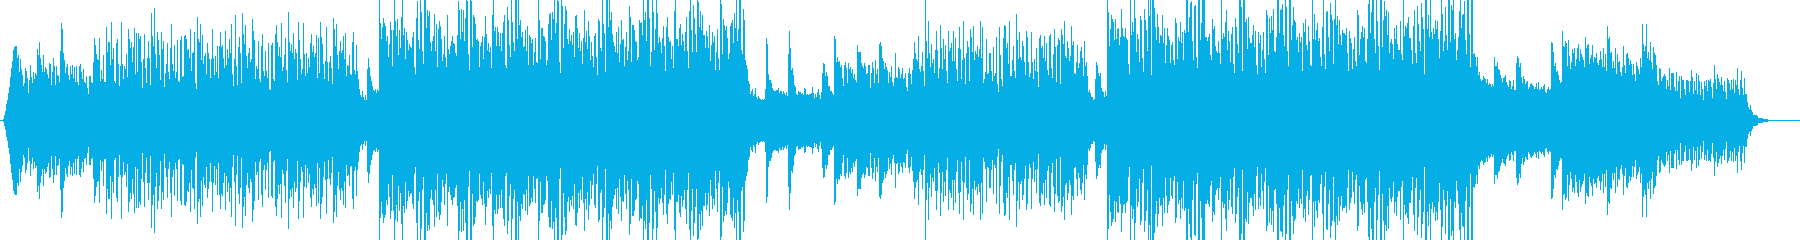 A song with a fashionable and clear image's reproduced waveform